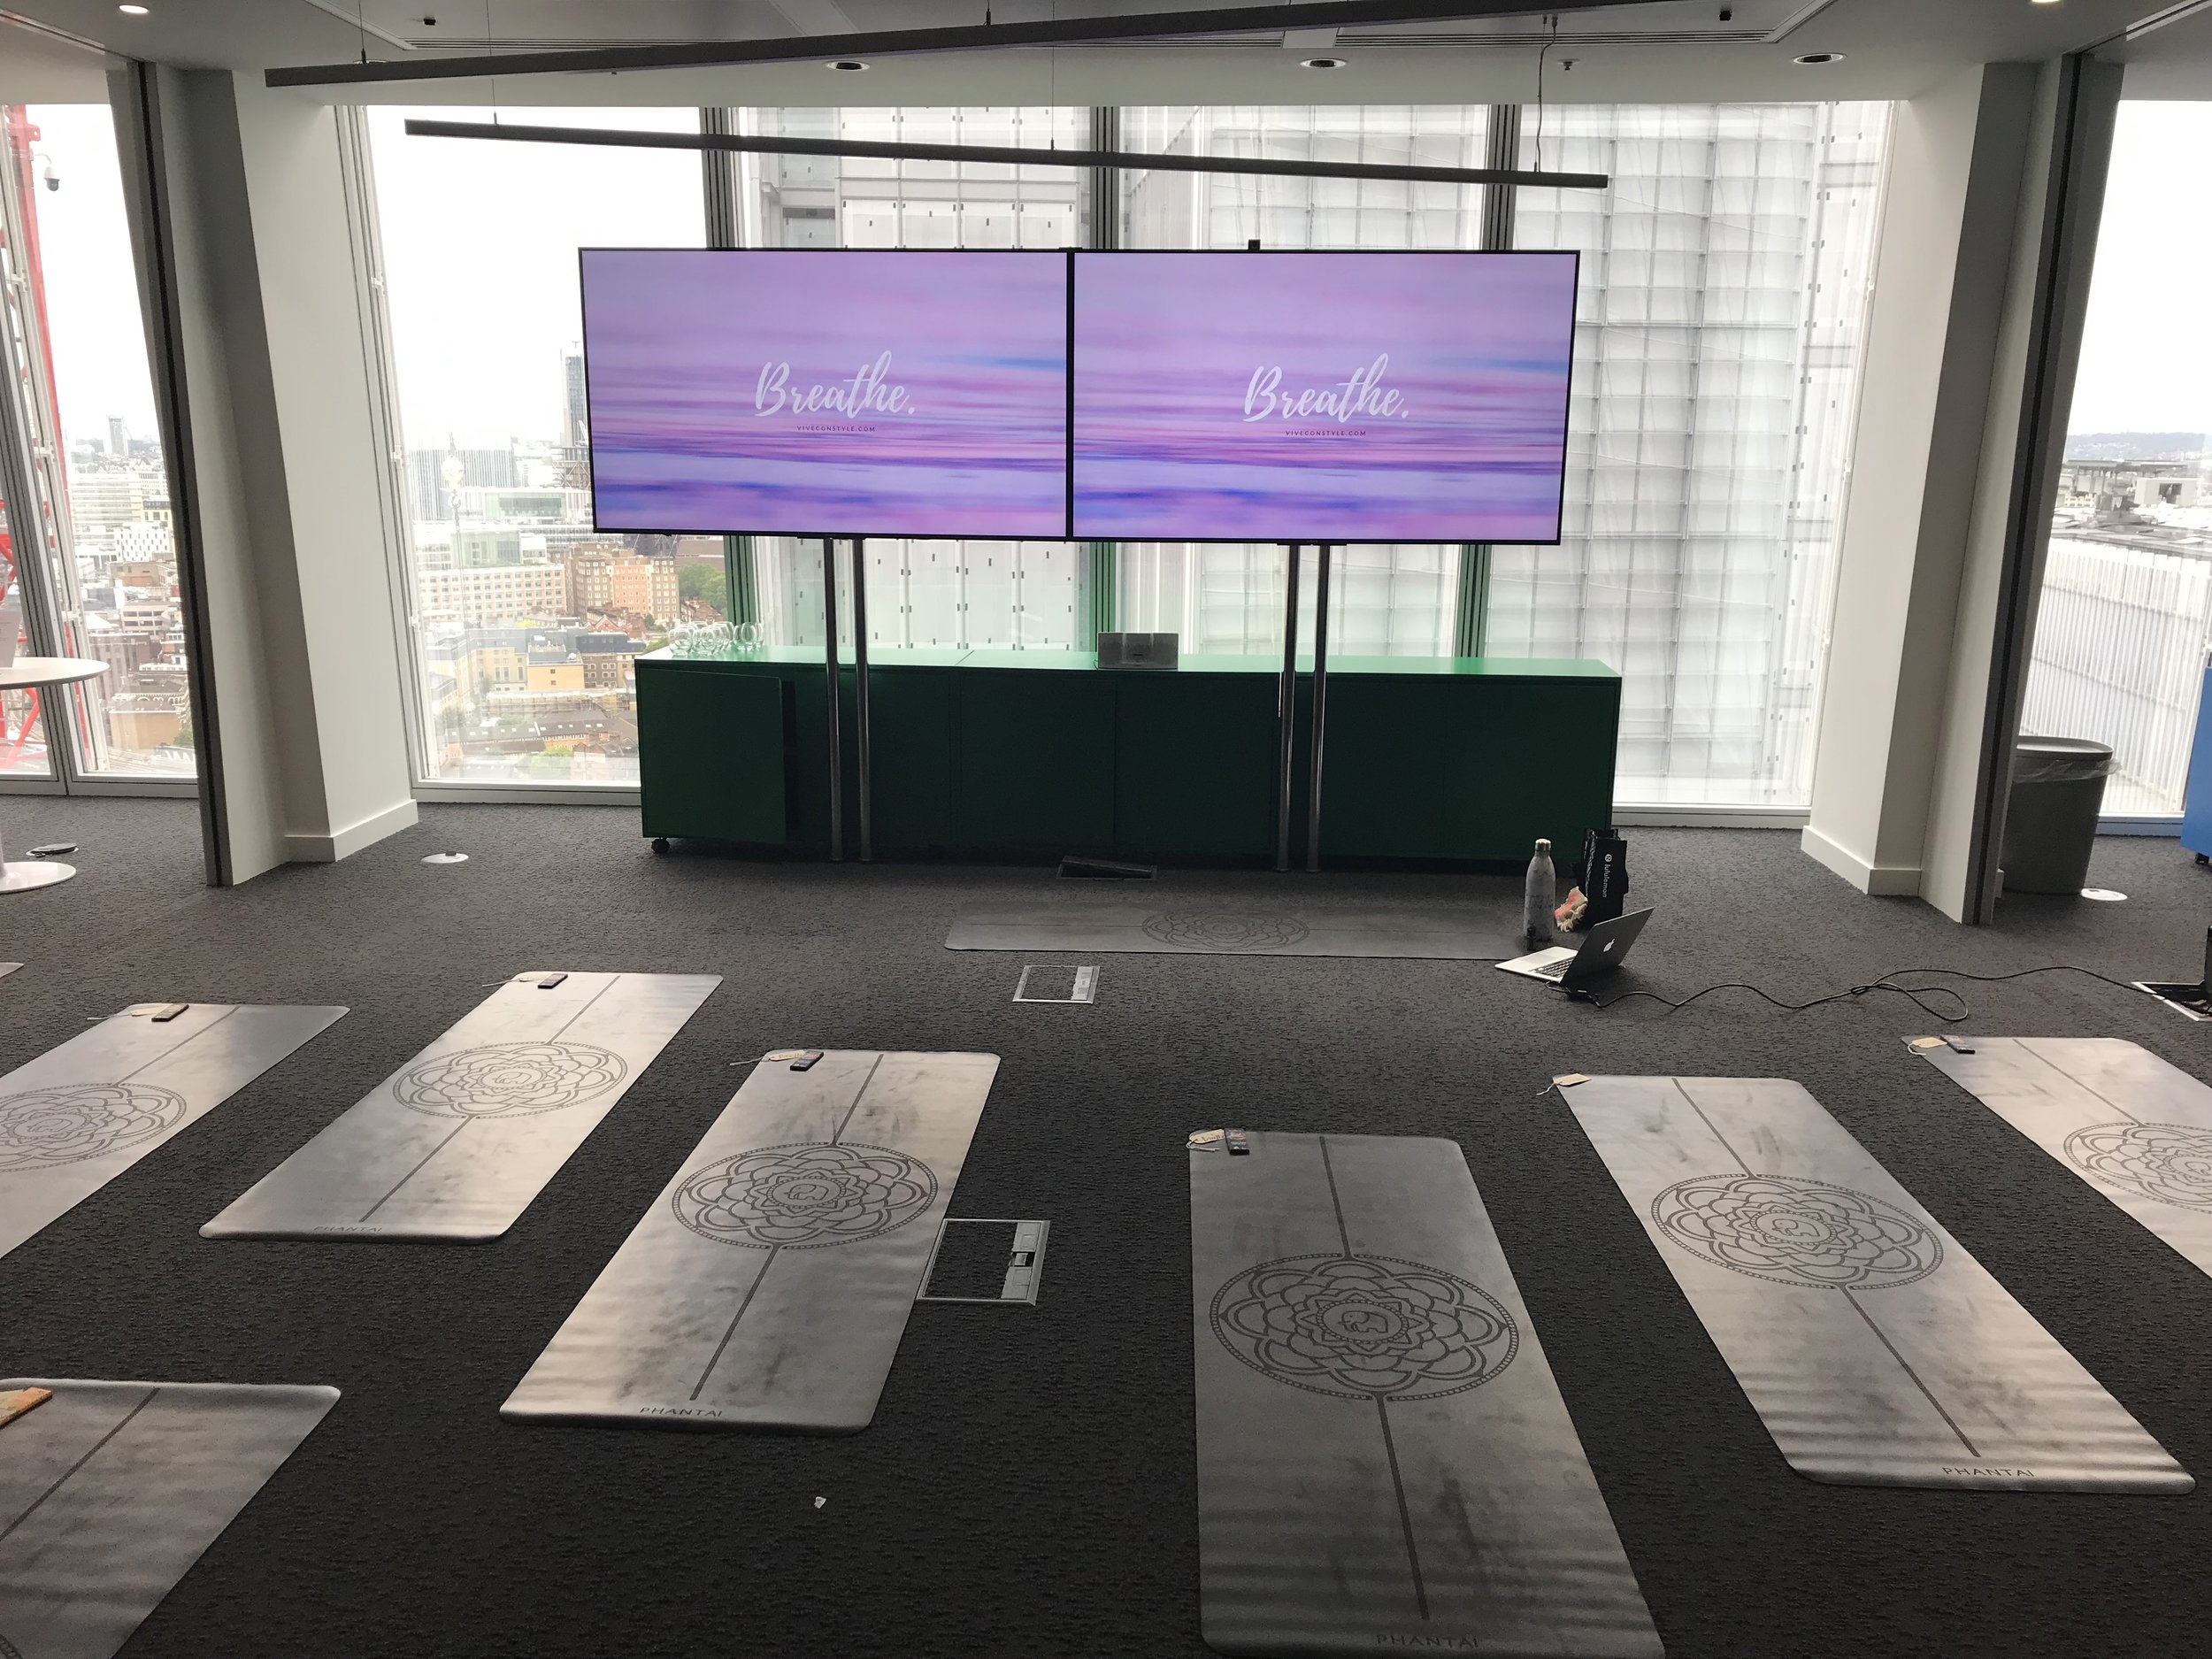 The Shard, Wellness week - Feel incredibly lucky to have taught yoga at The Shard for their wellness week! It was amazing to be teaching on the 23rd floor and with so many lovely yogis.